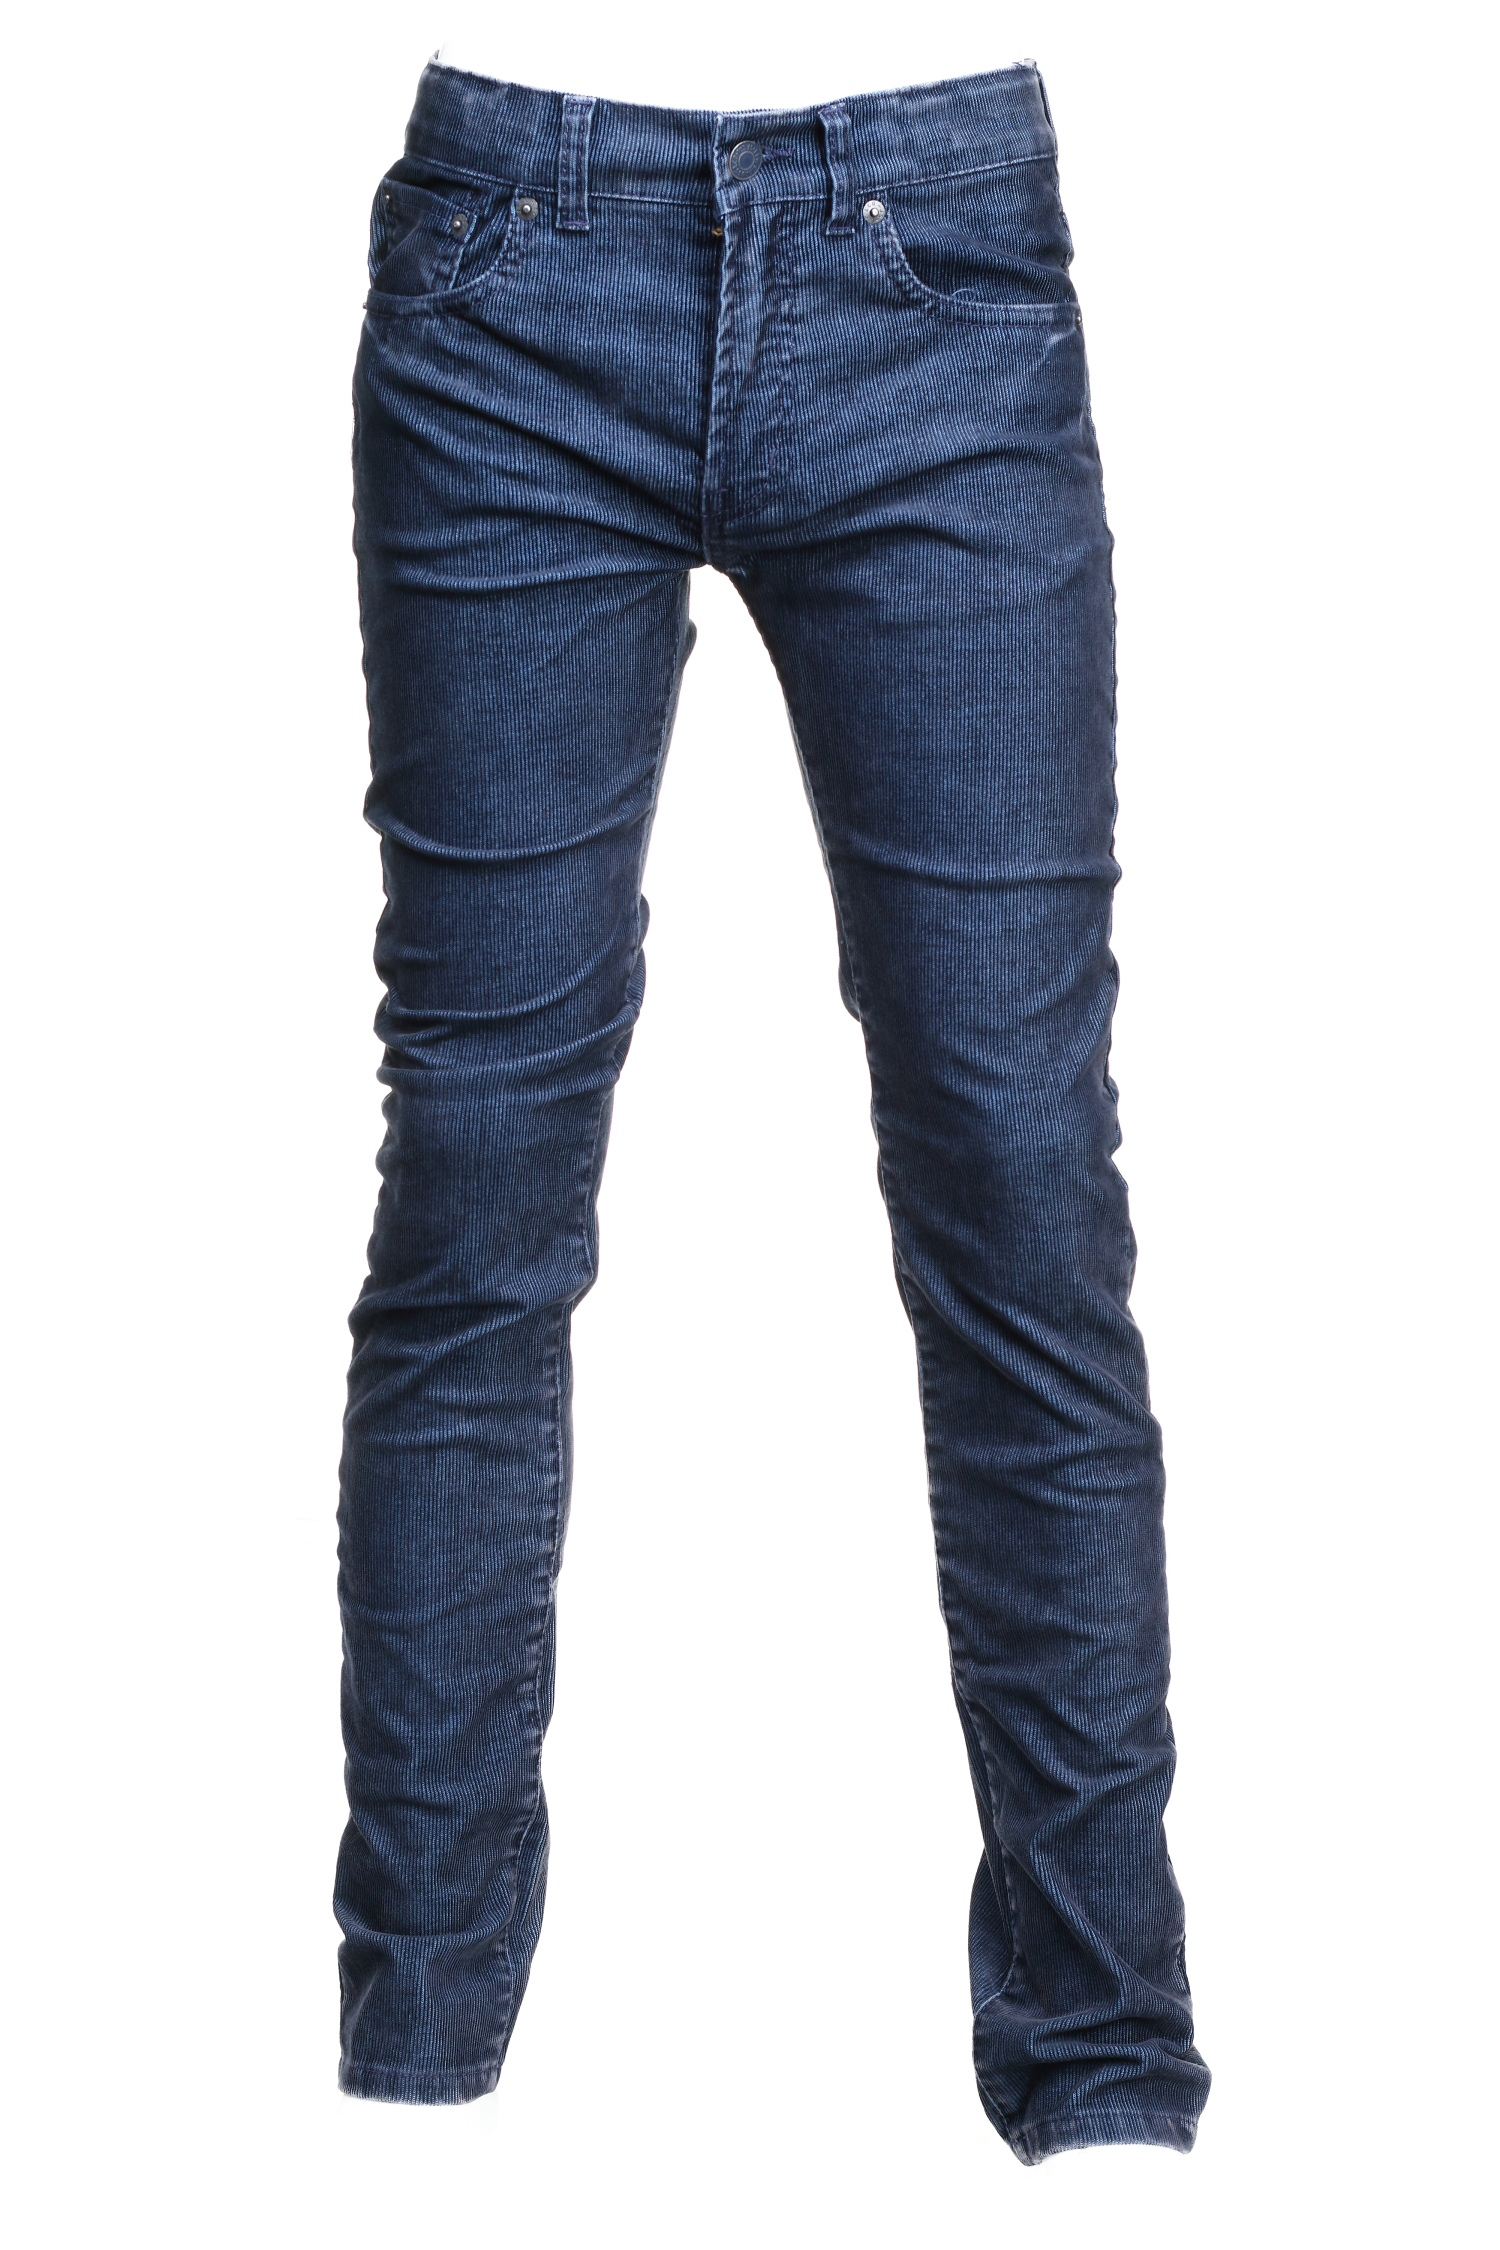 http://www.leadermode.com/163221/levis-nm22137-46-denim.jpg